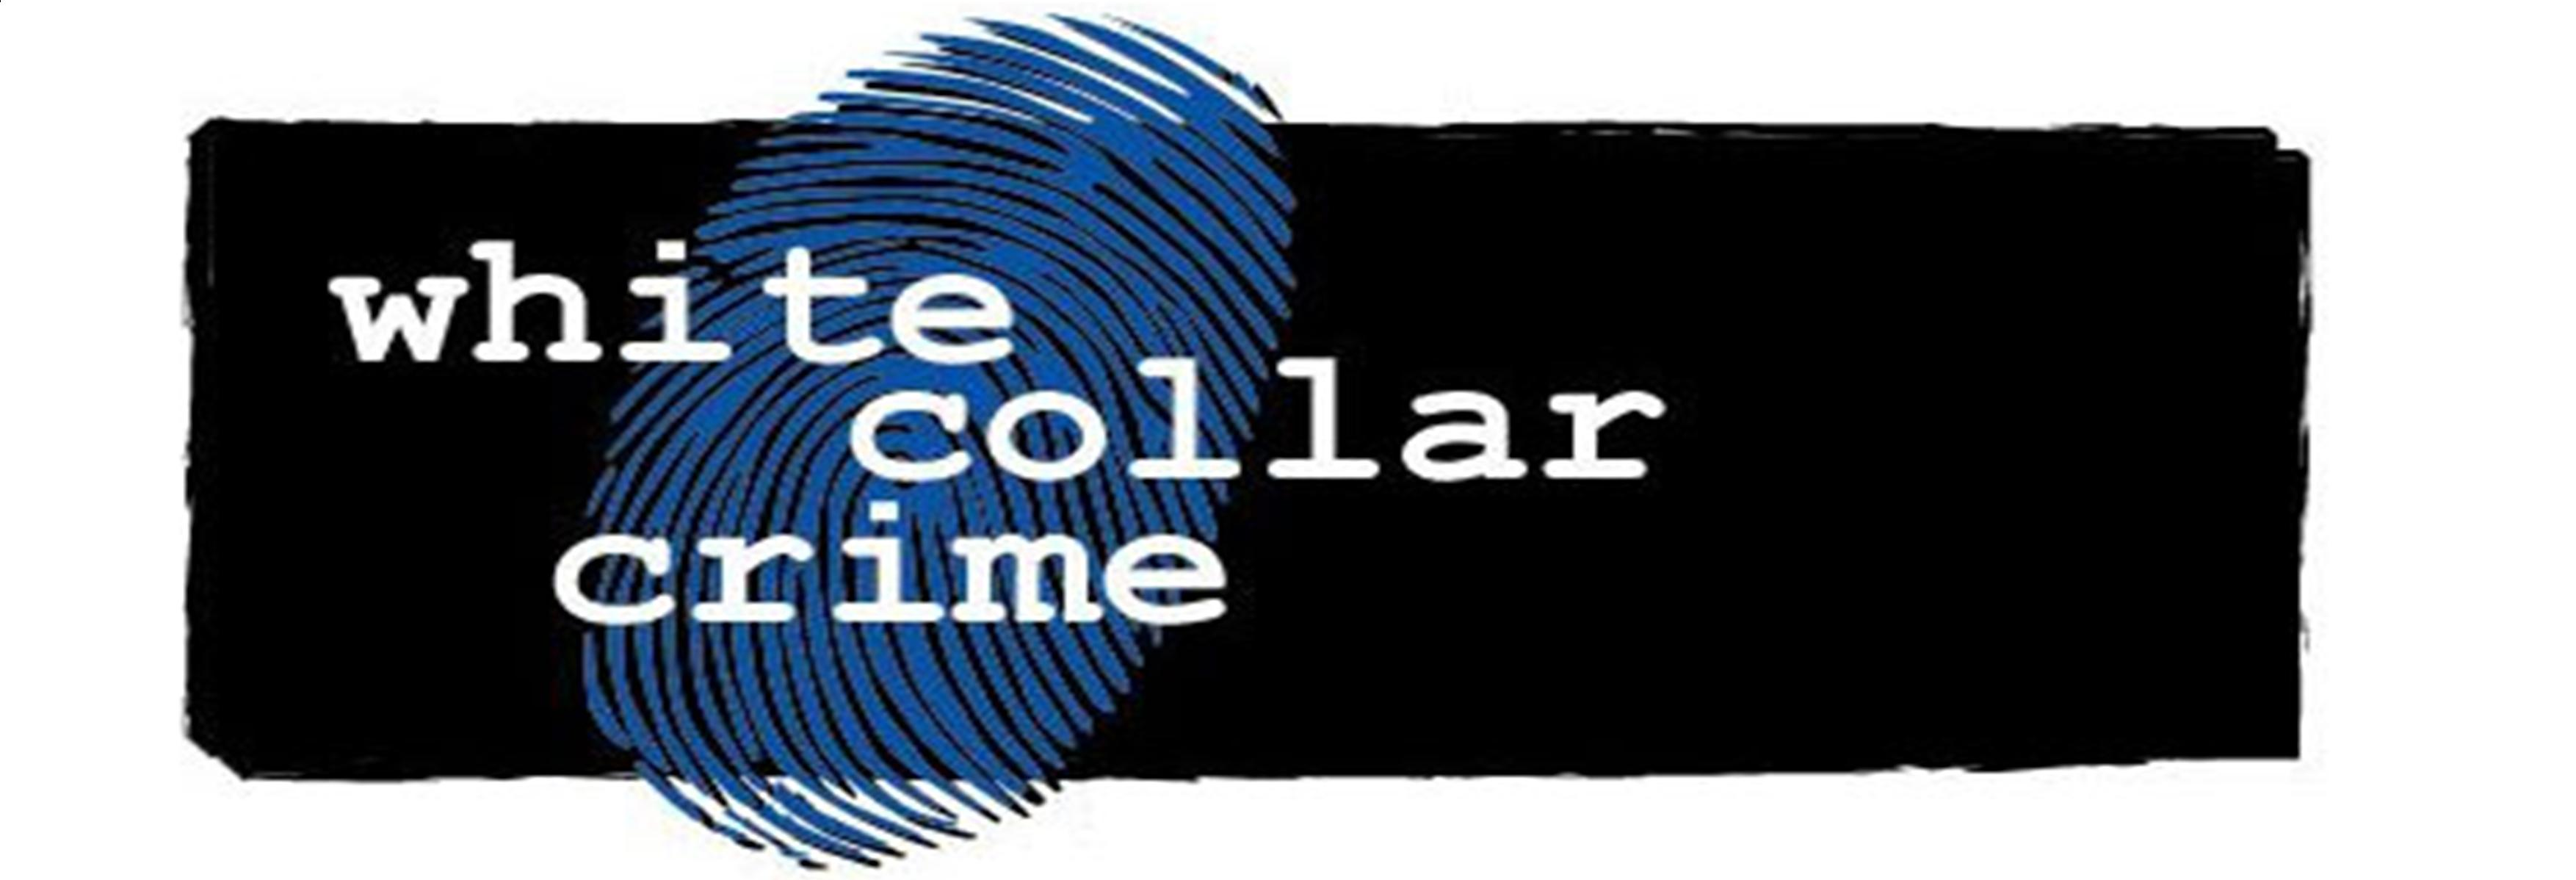 an analysis of white collar crime in the united states